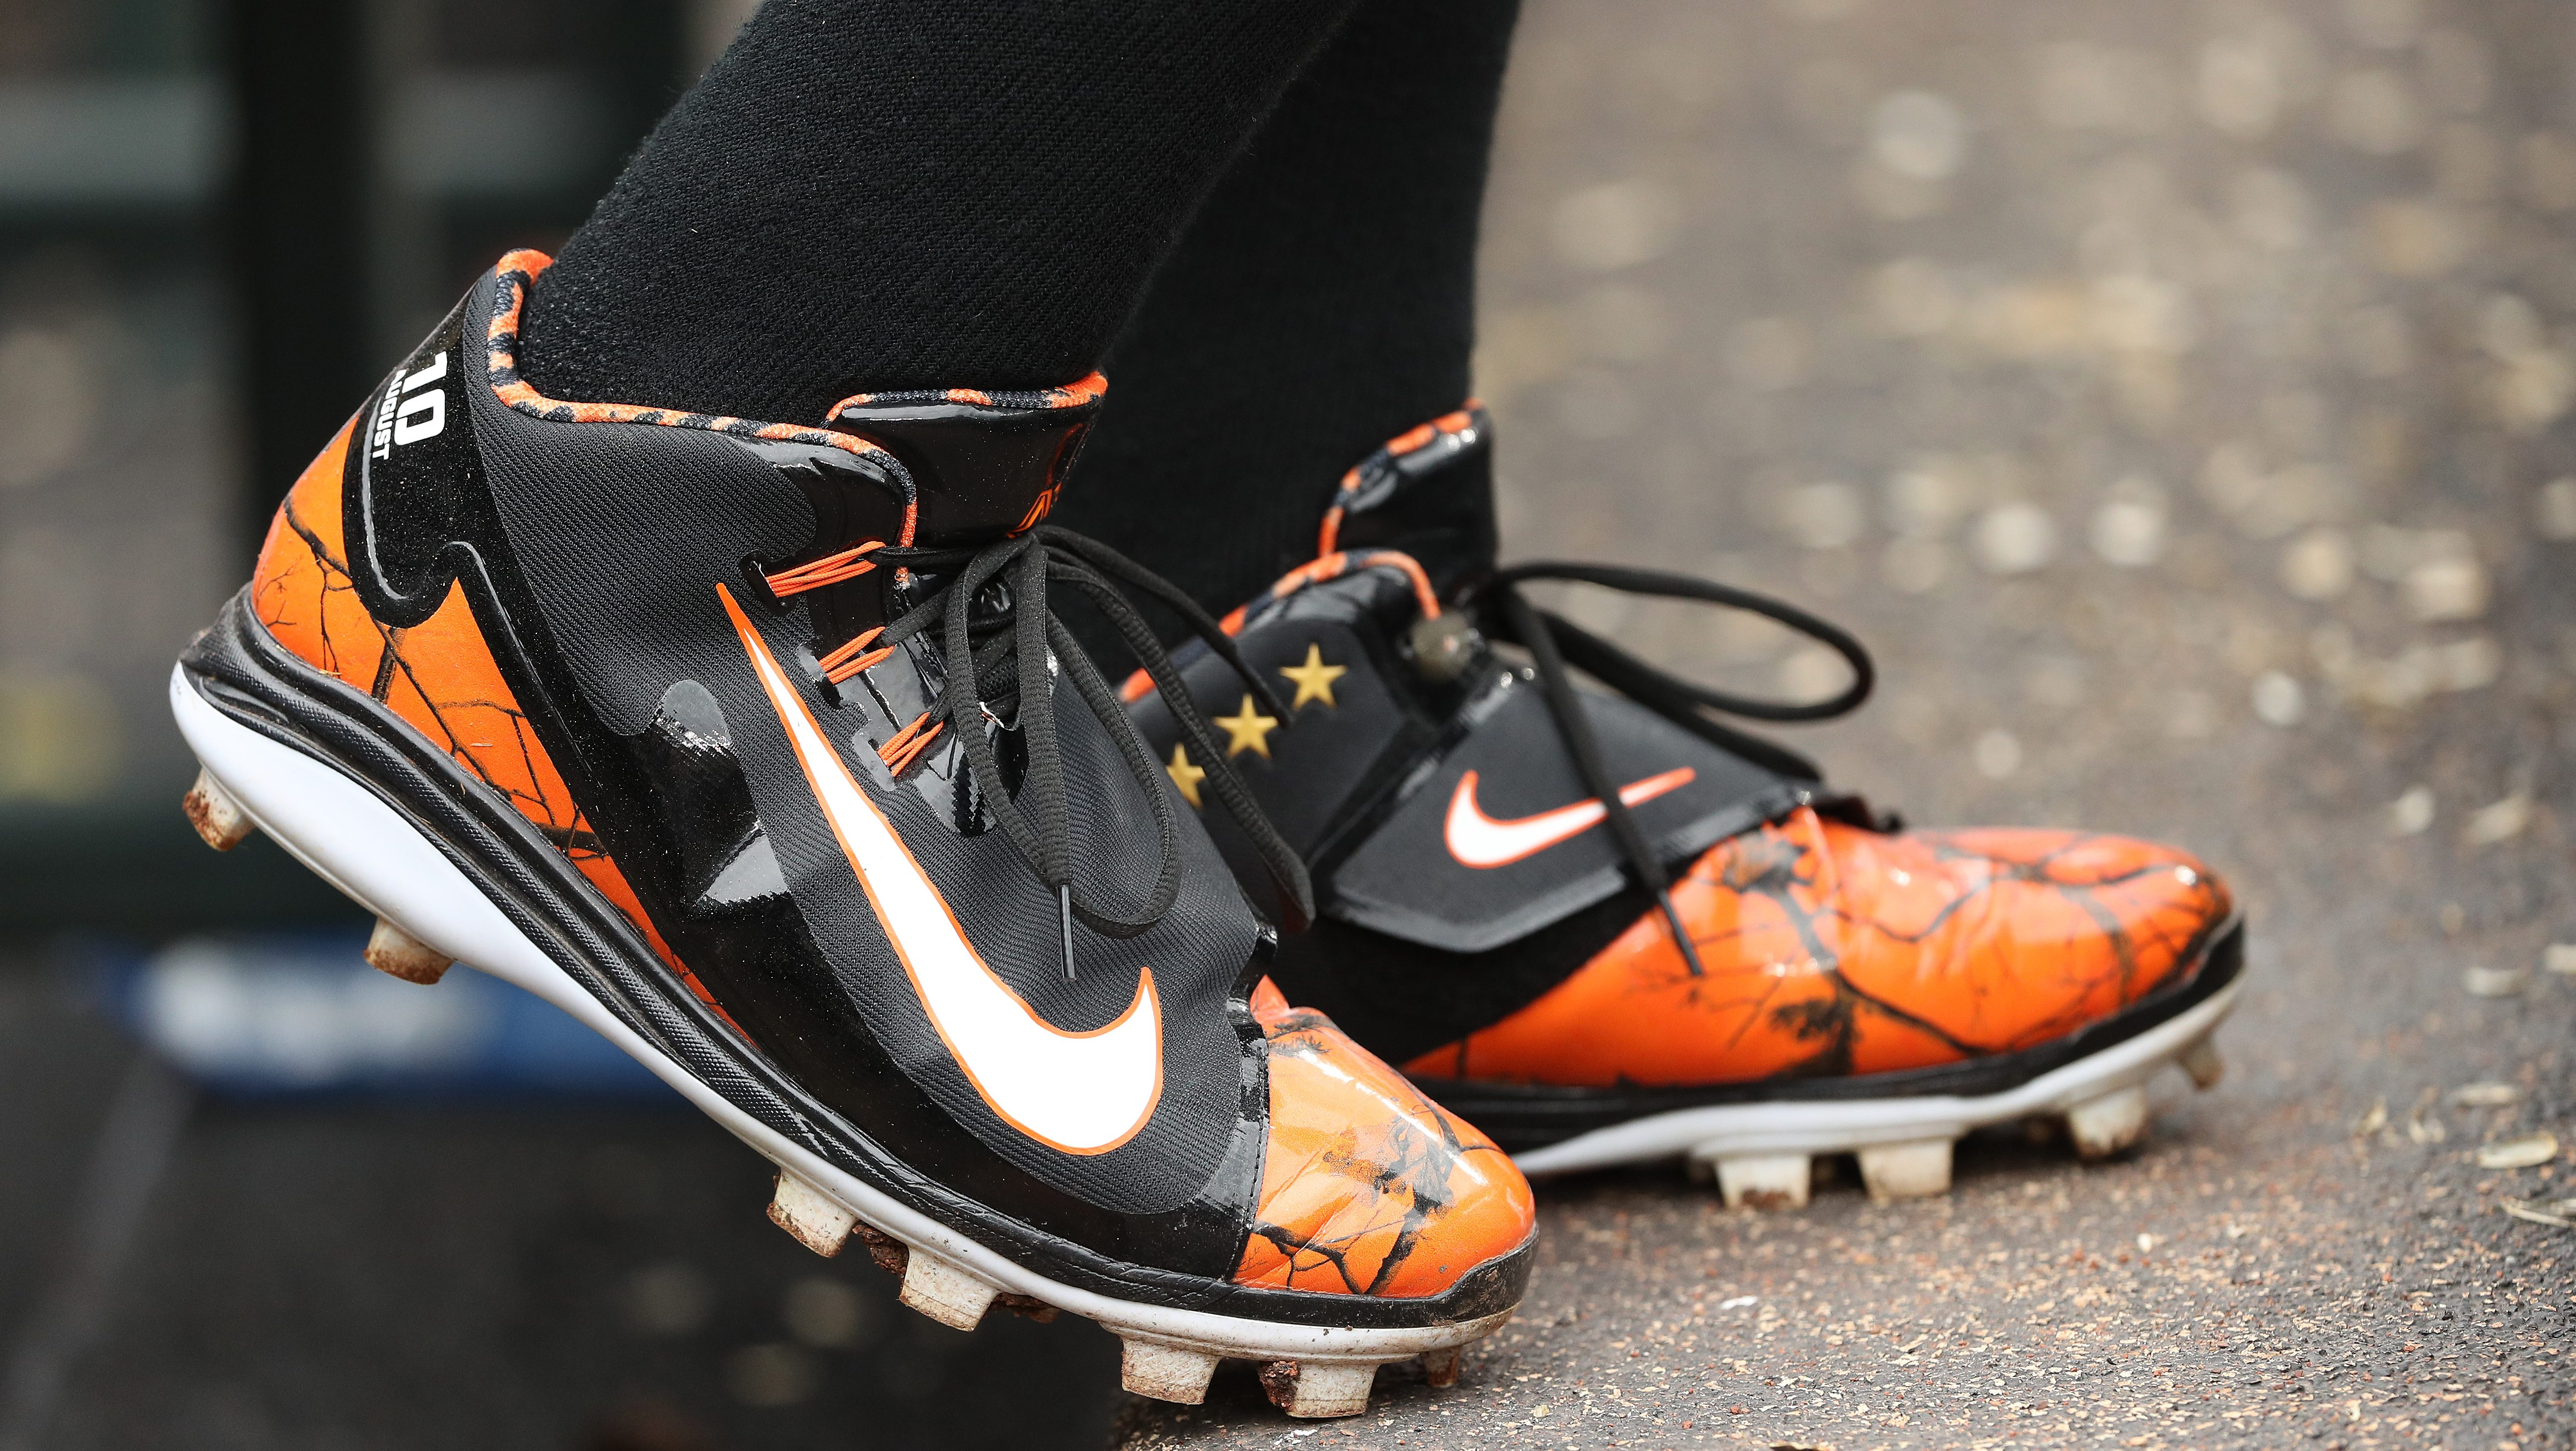 oración Nublado Depender de  Swoosh up front: Nike to replace Under Armour for MLB - MLB | NBC Sports